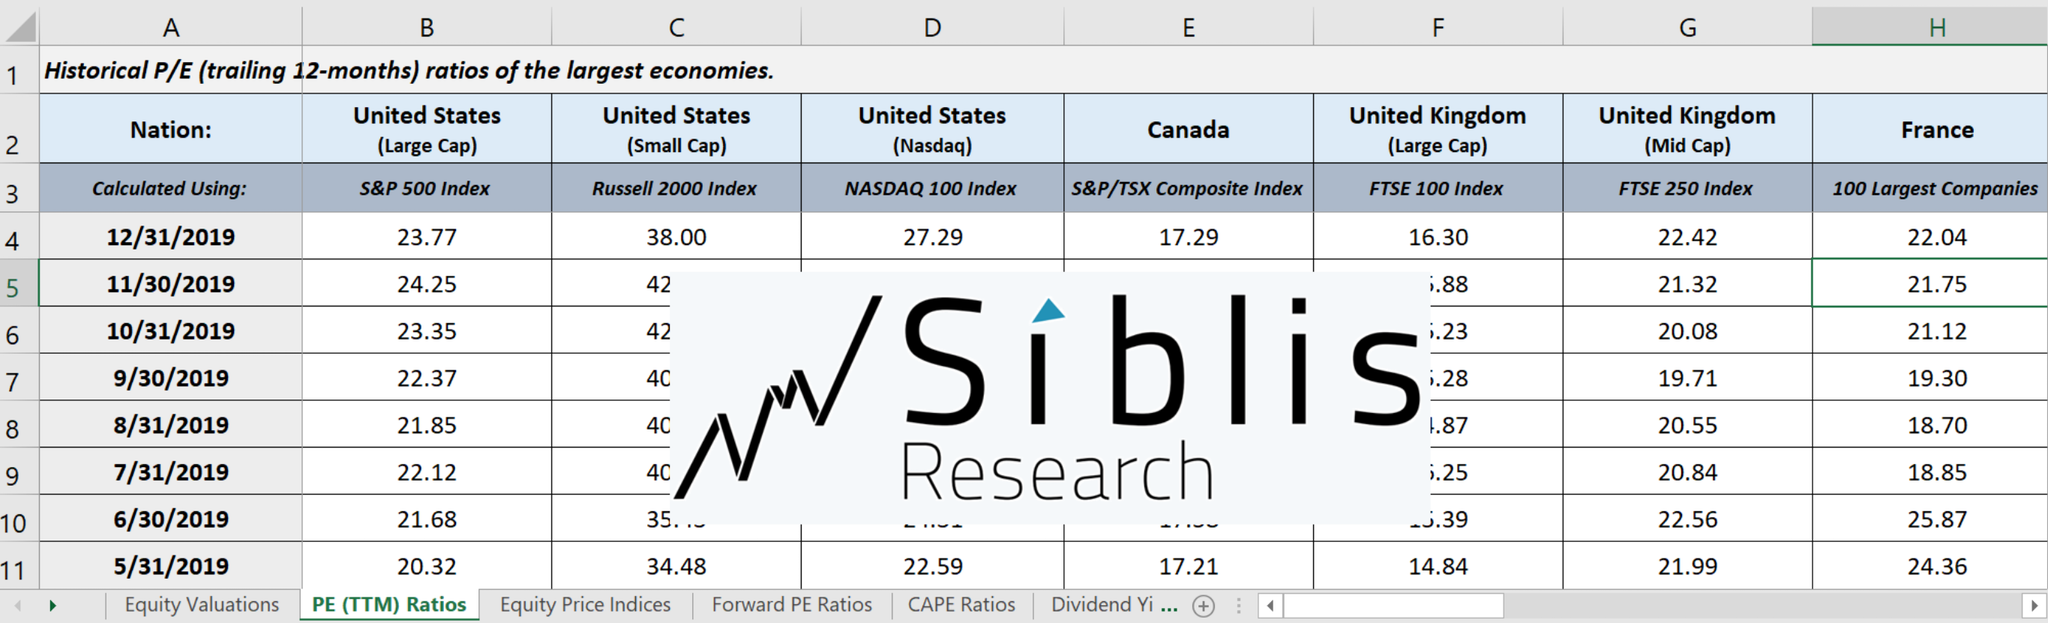 Global Equity Valuations Researcher Dataset by Siblis Research (Annual Subscription)